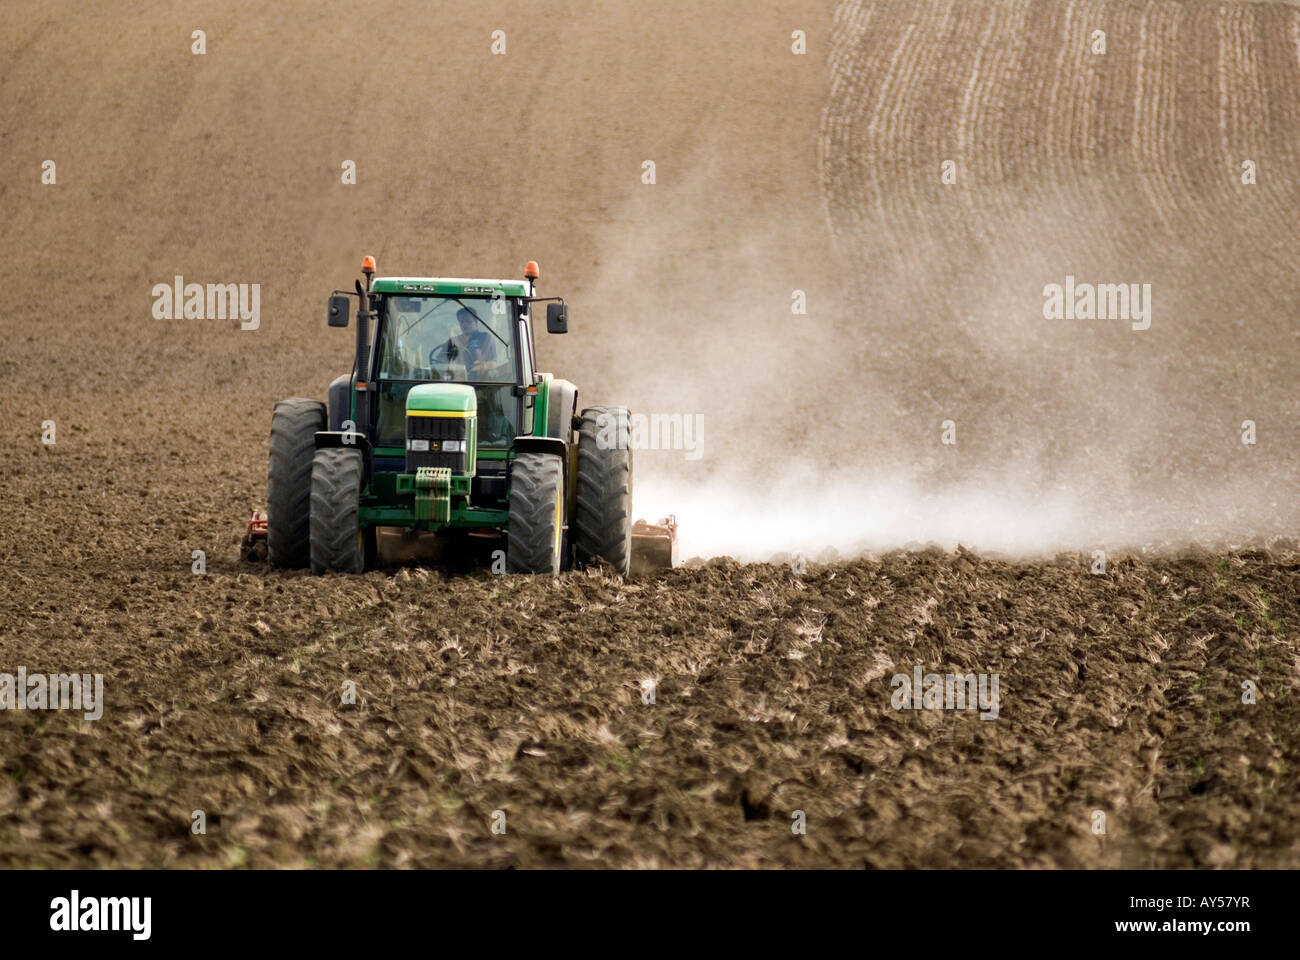 Doug Blane Tractor plowing a field in Oxfordshire near the Oxford Canal - Stock Image